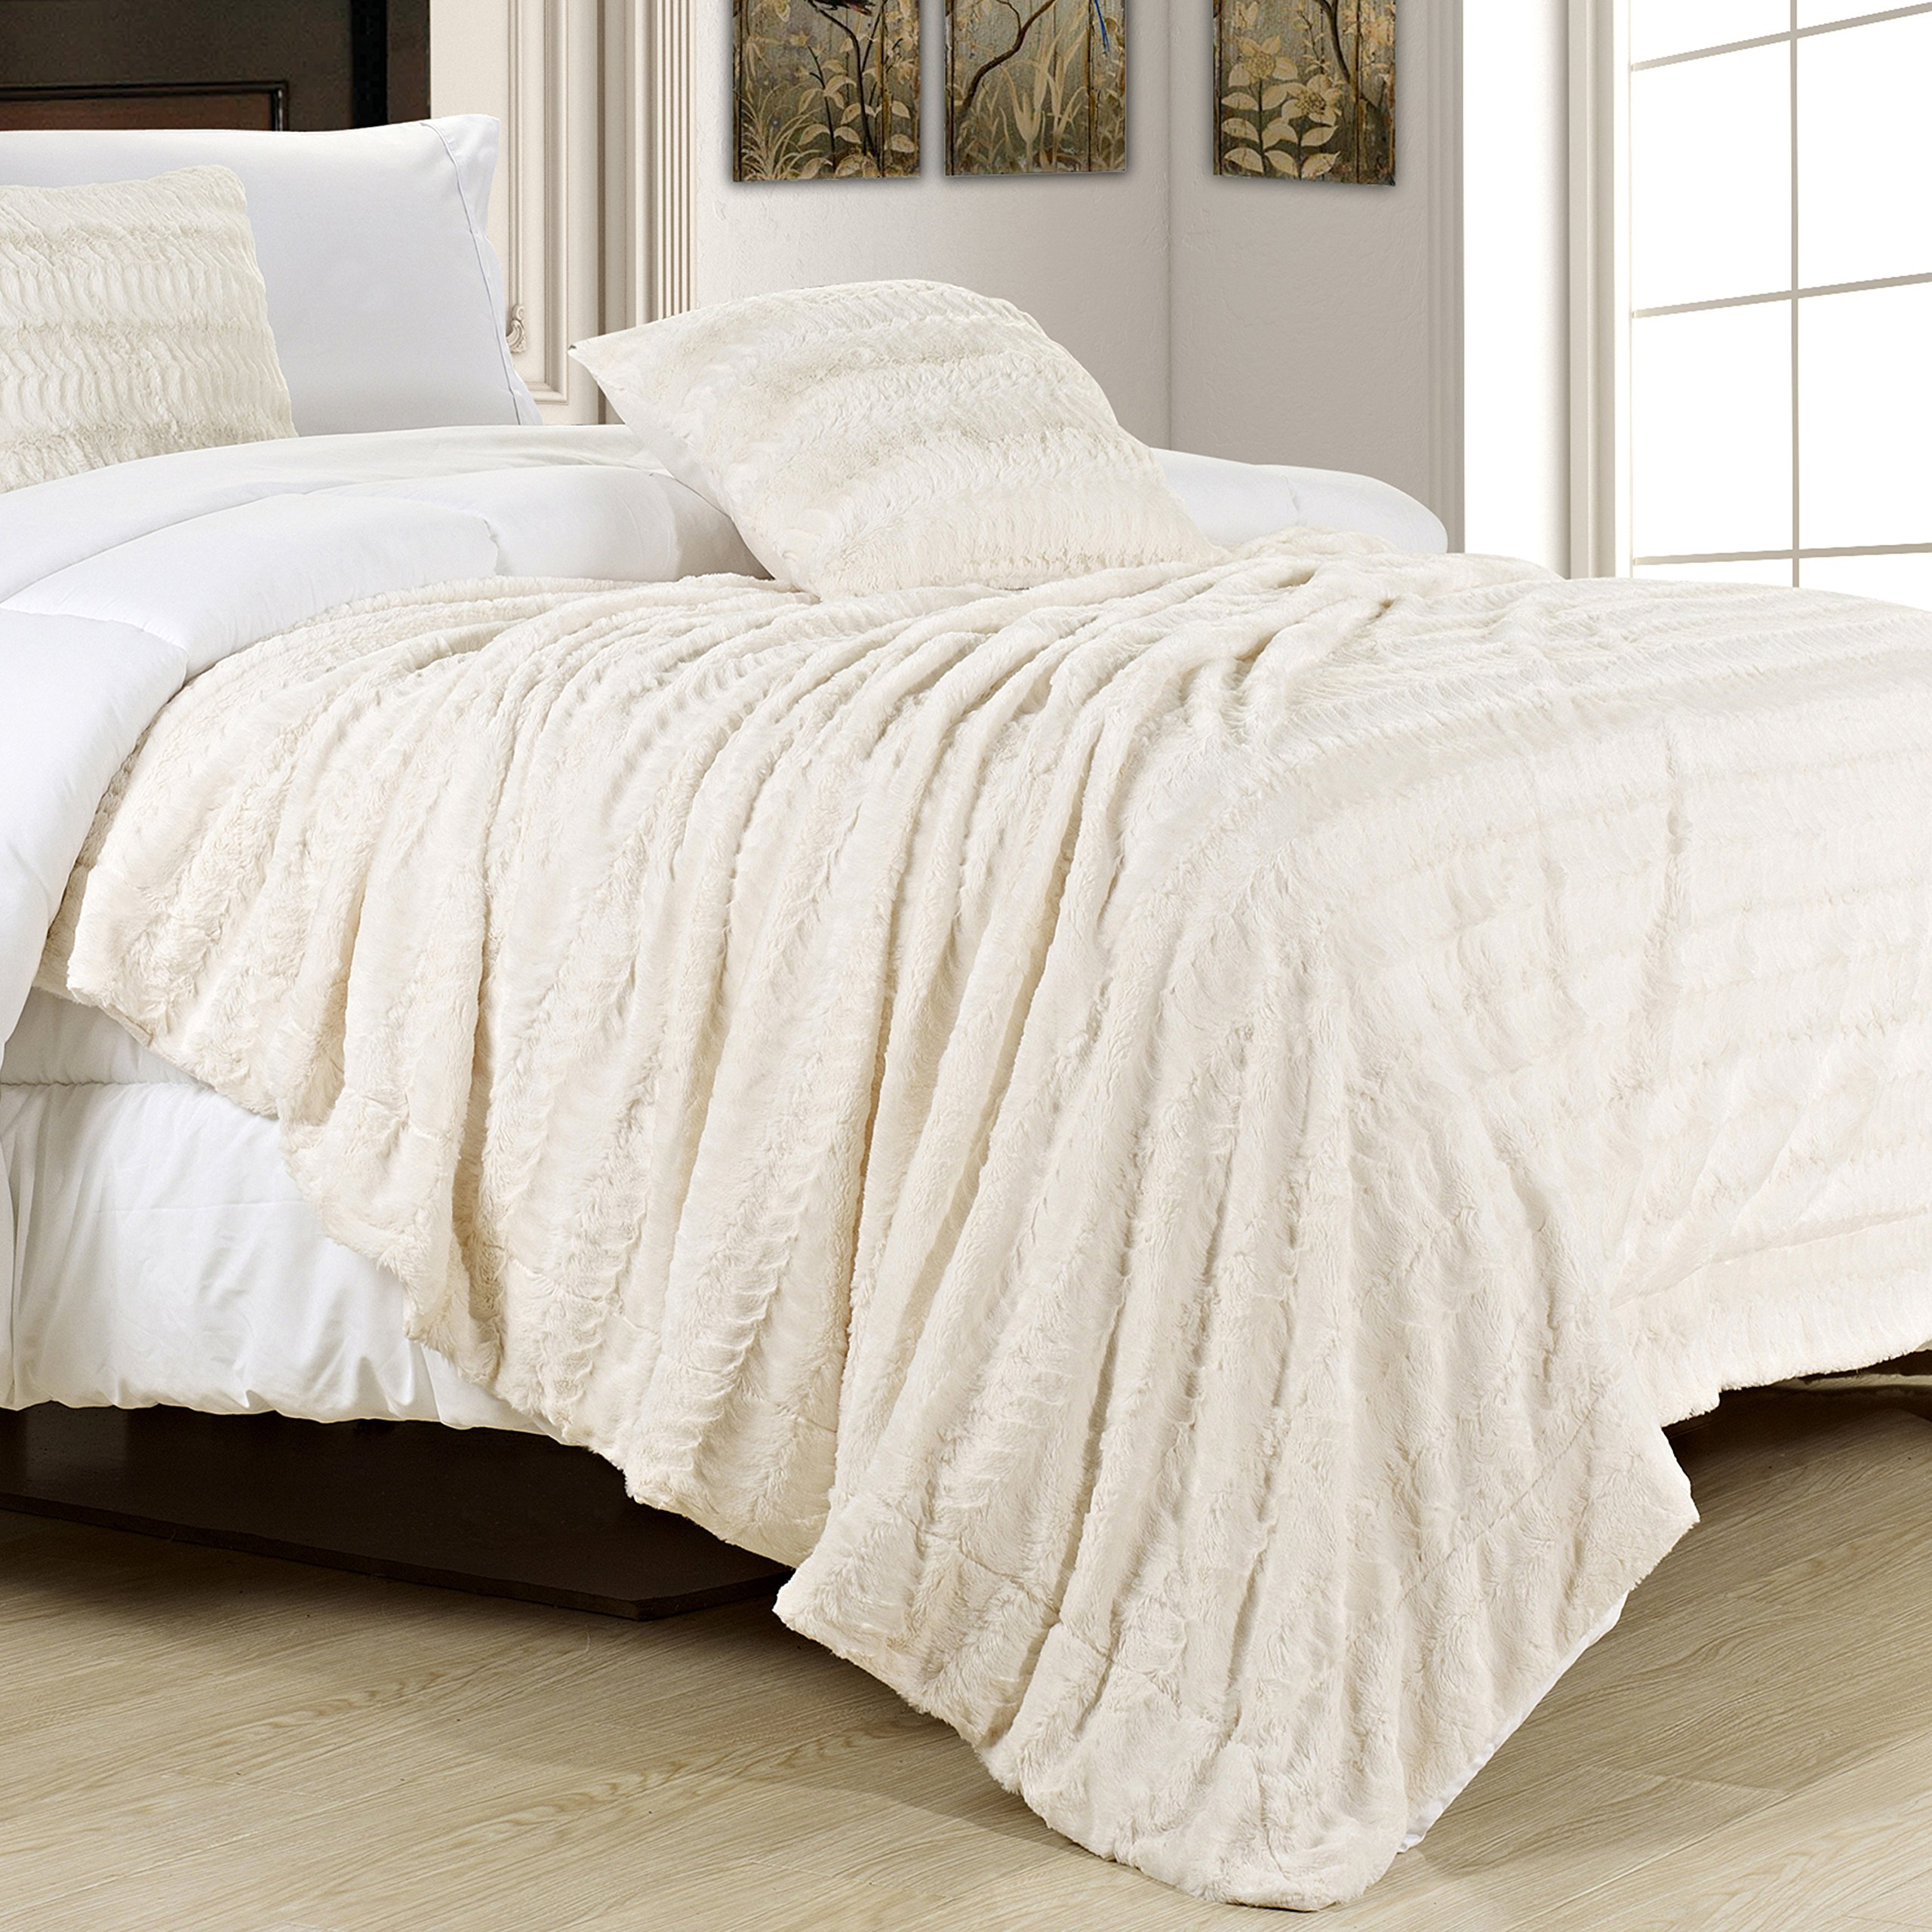 Swift Home Embossed Faux Fur Throw Blanket & Bedspread - Luxurious Over-sized Faux Fur Bed Throw Blanket-King, 108'' x 86'', Cream